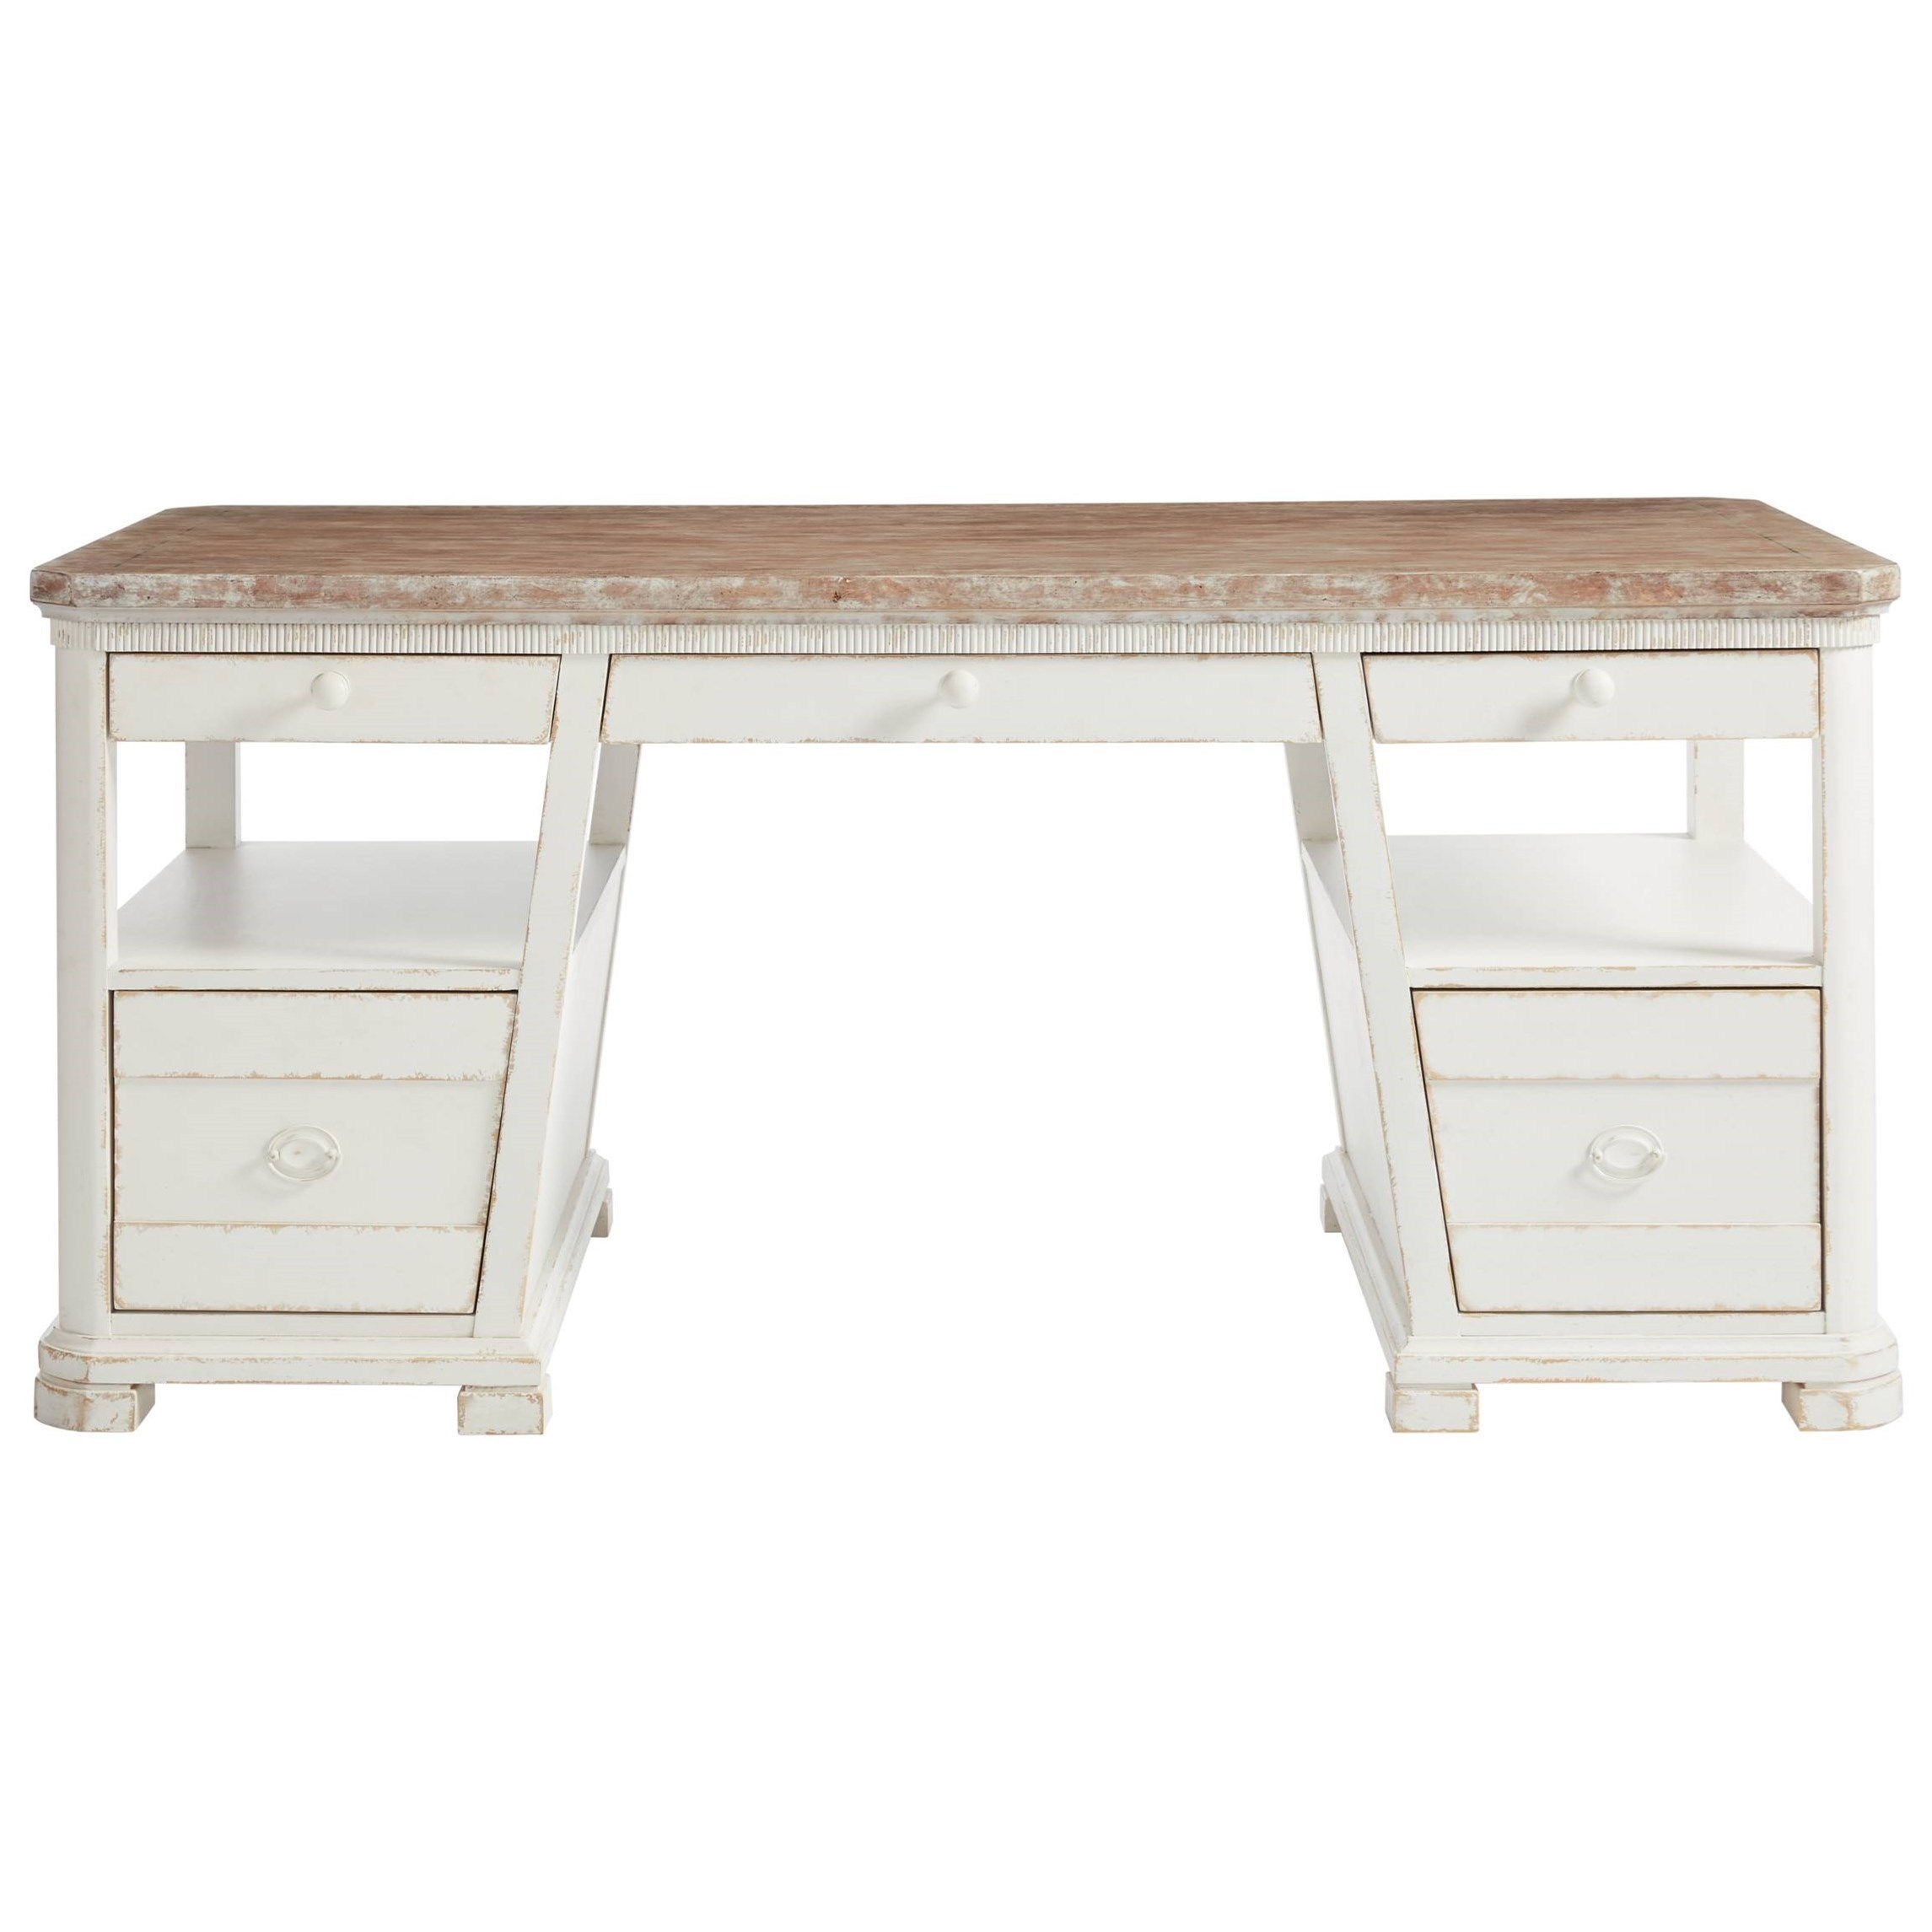 Stanley Furniture Juniper Dell 615 25 03 Writing Desk With